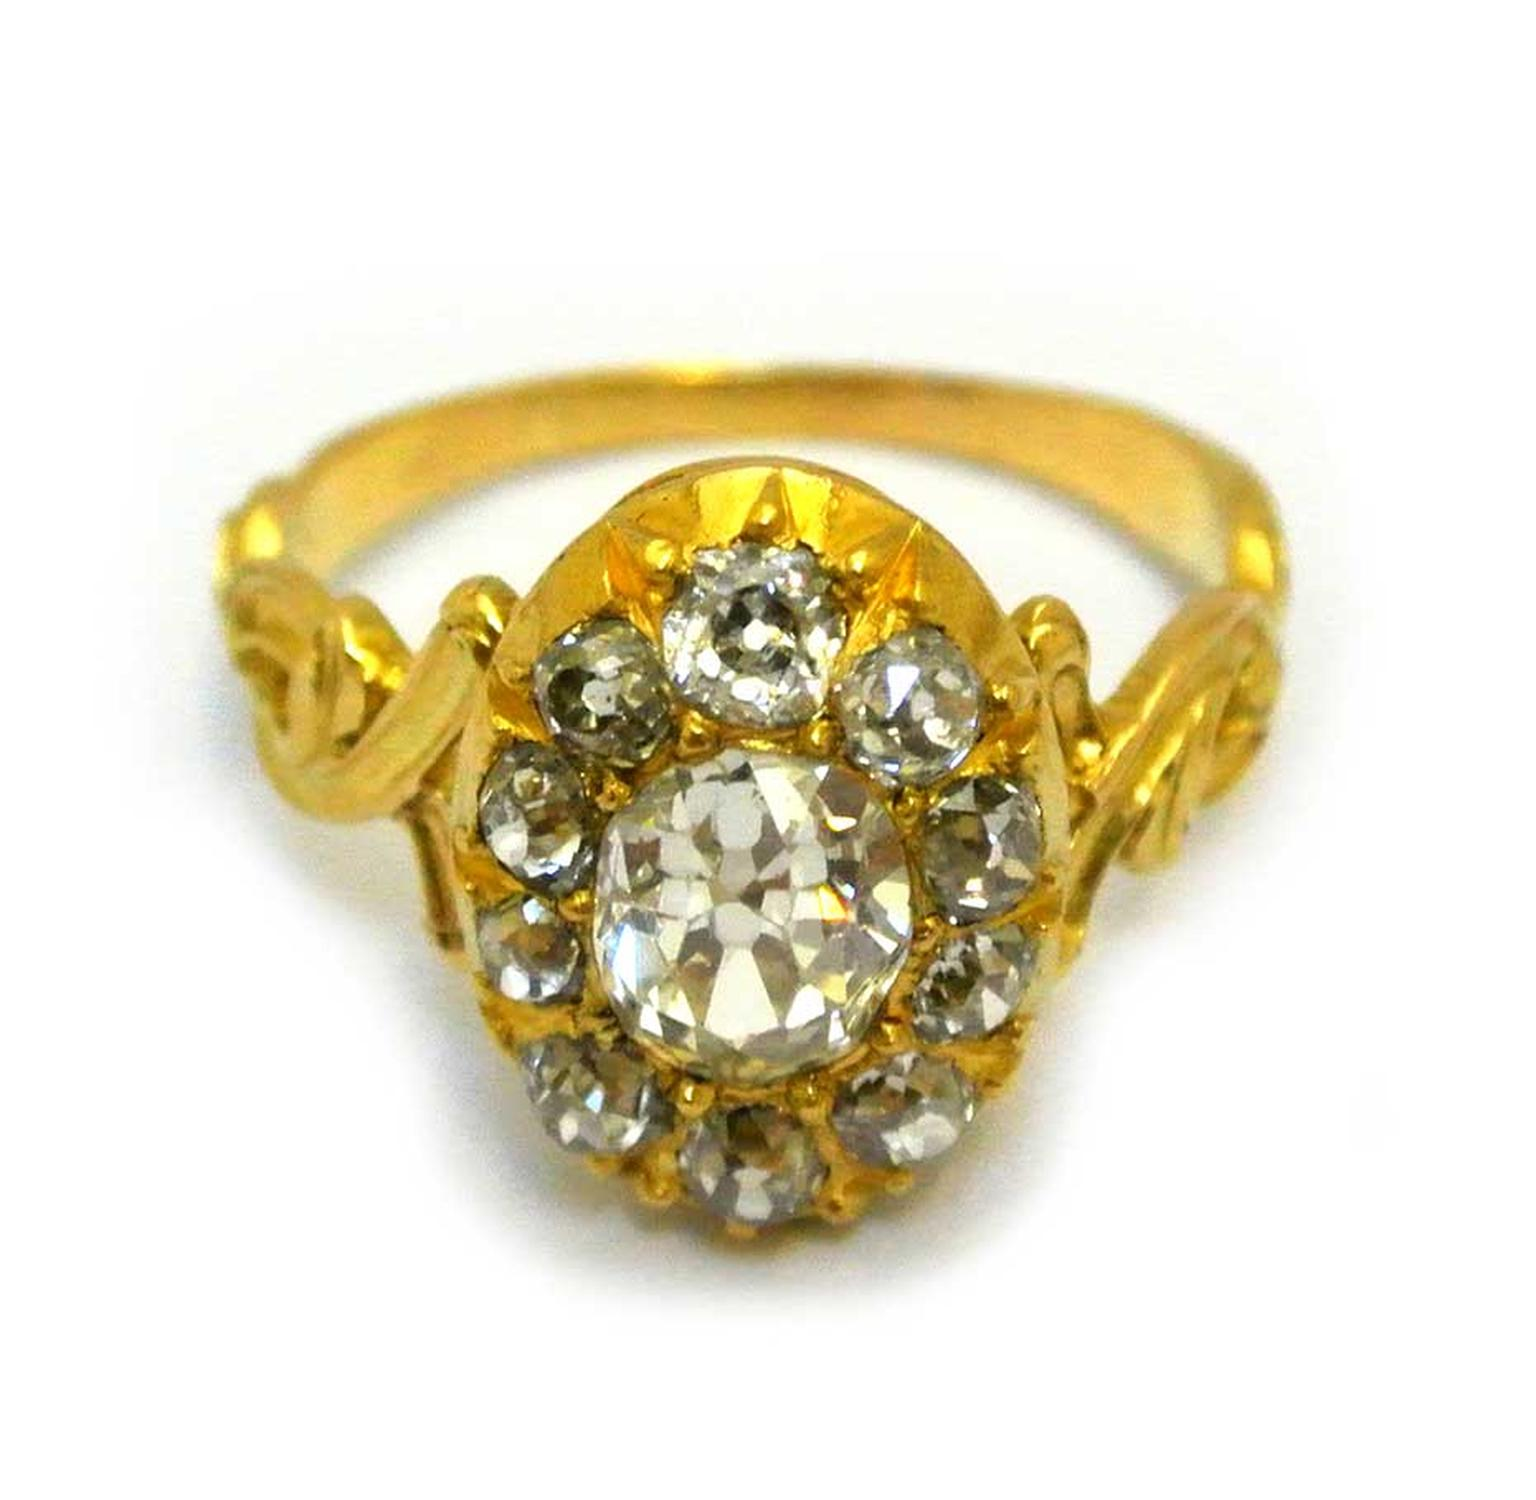 Diamond engagement ring in yellow gold, circa 1880. Available at Grays Antique Market, London.